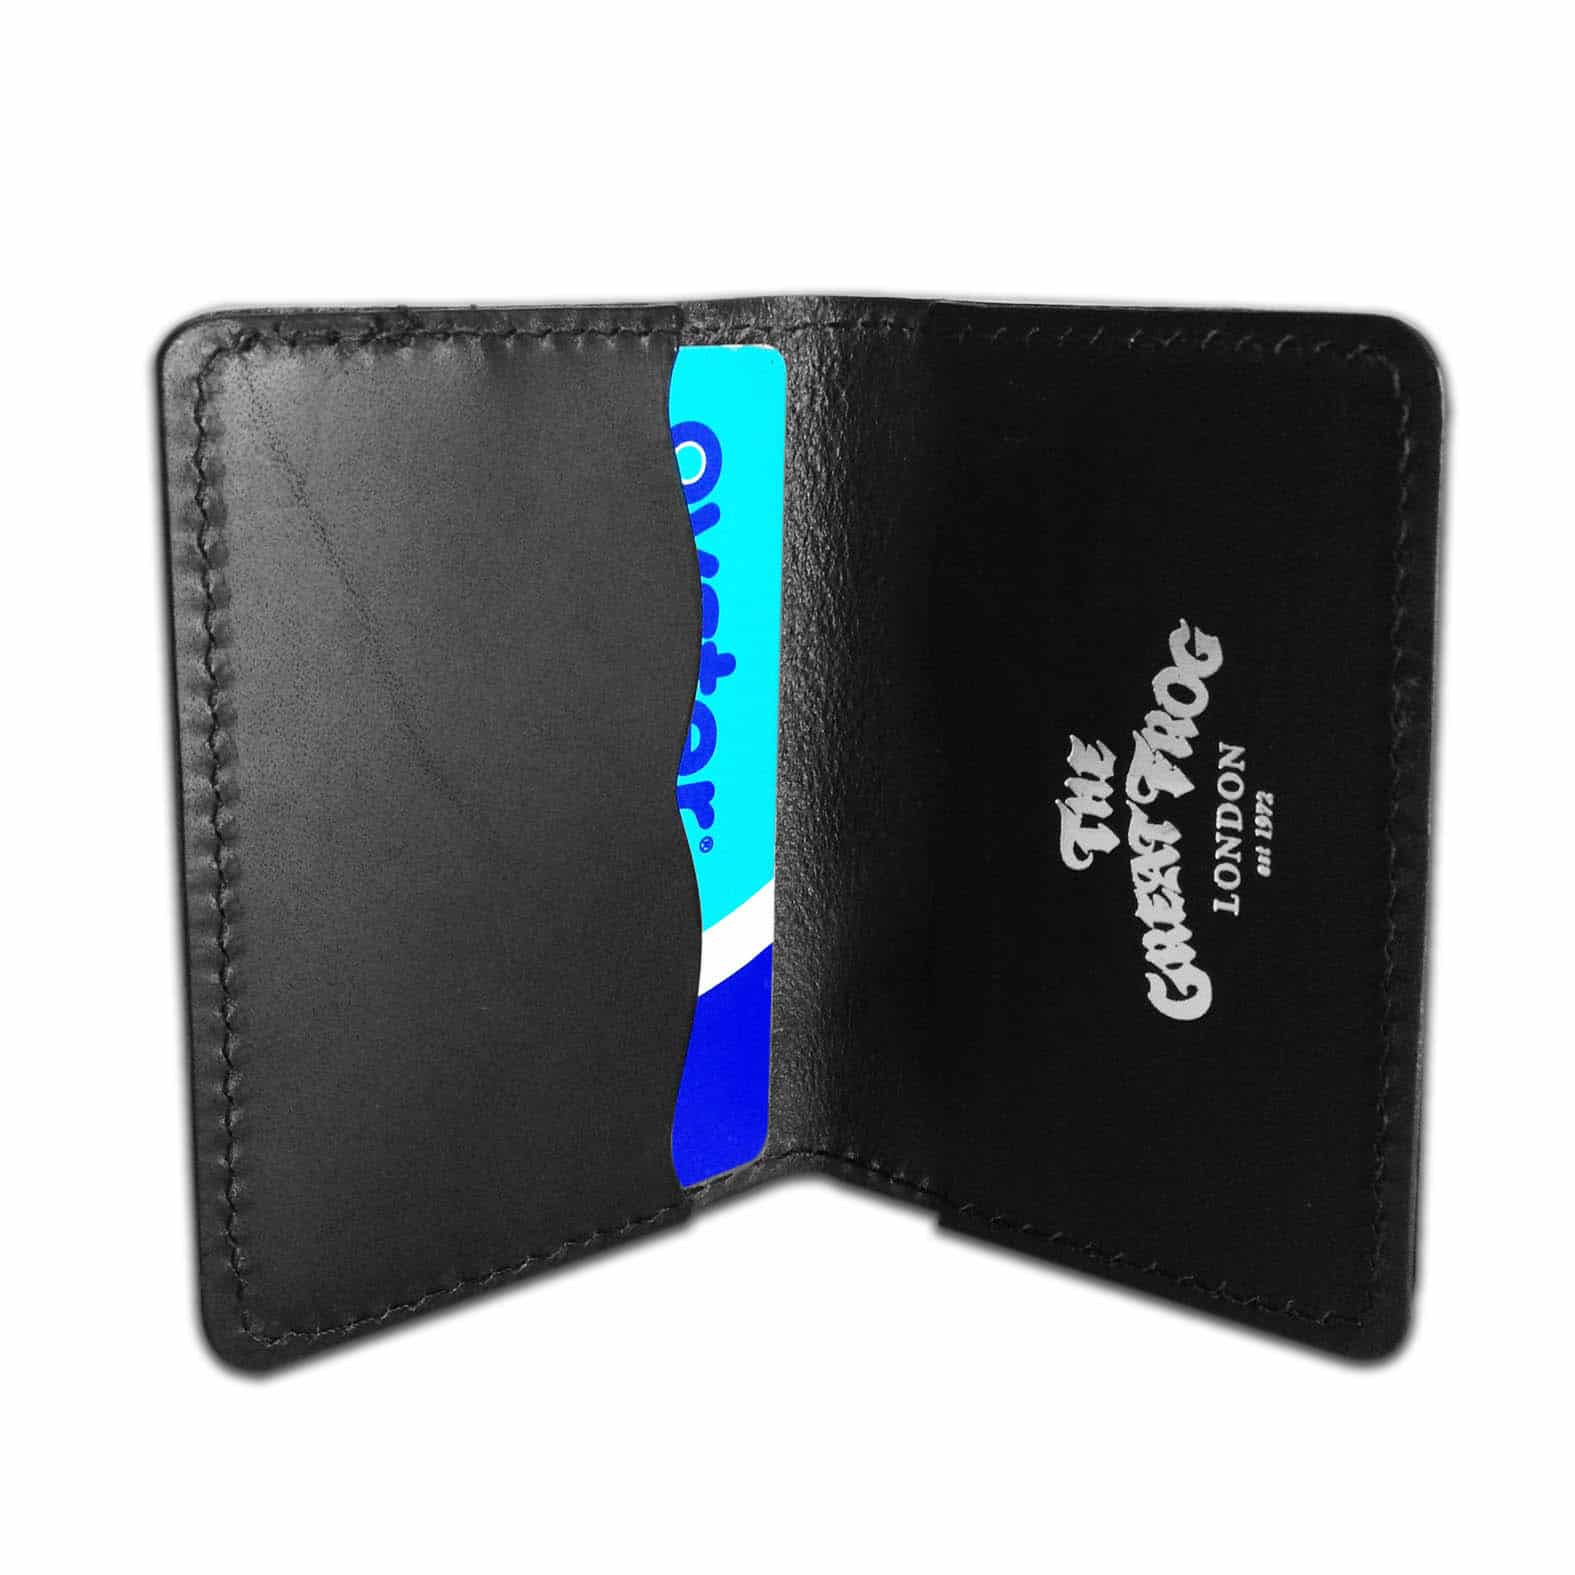 NEW: TGF Leather Card Holders